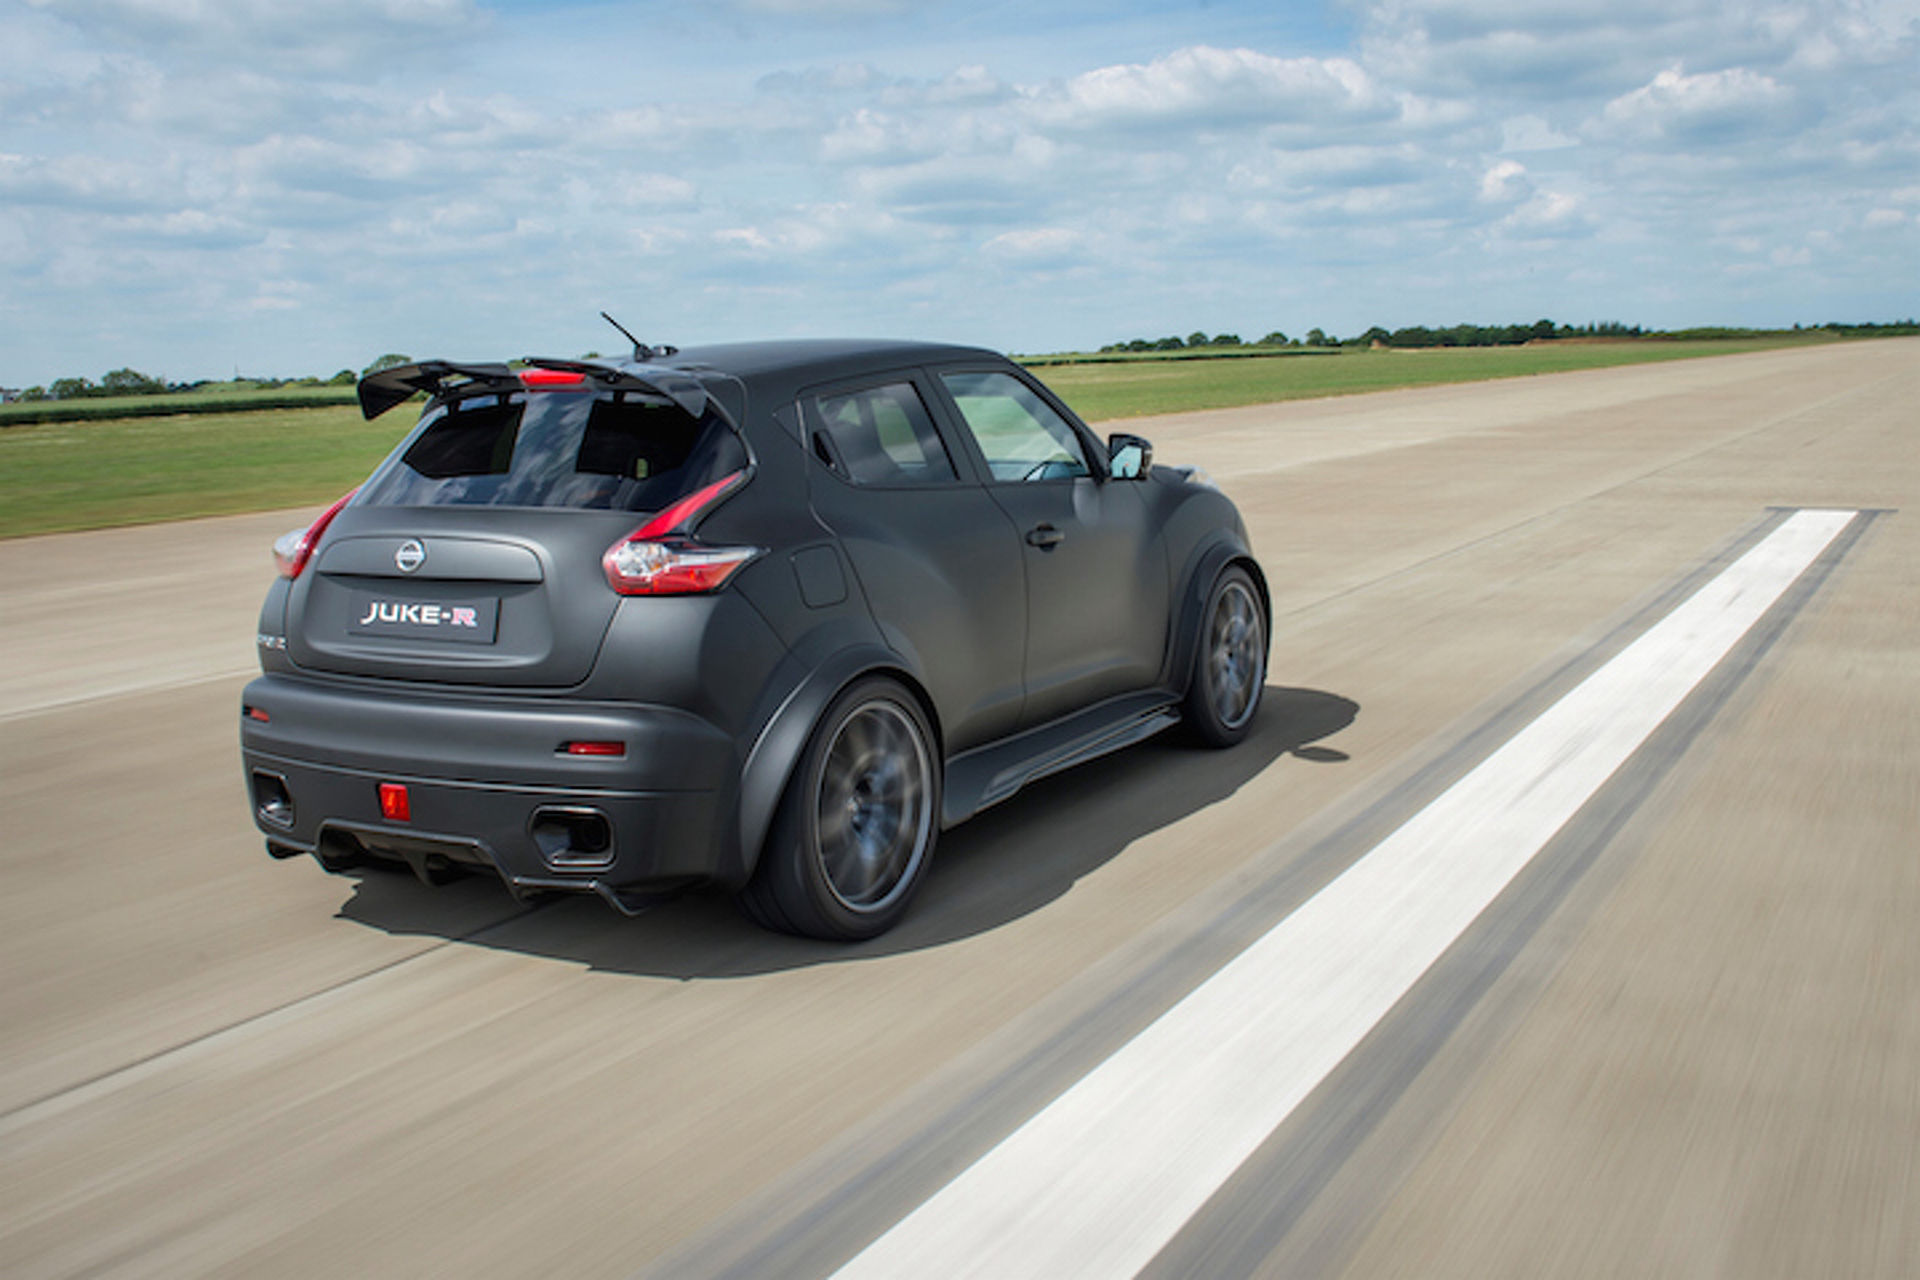 600-HP Nissan Juke-R 2.0 Going Into Limited Production